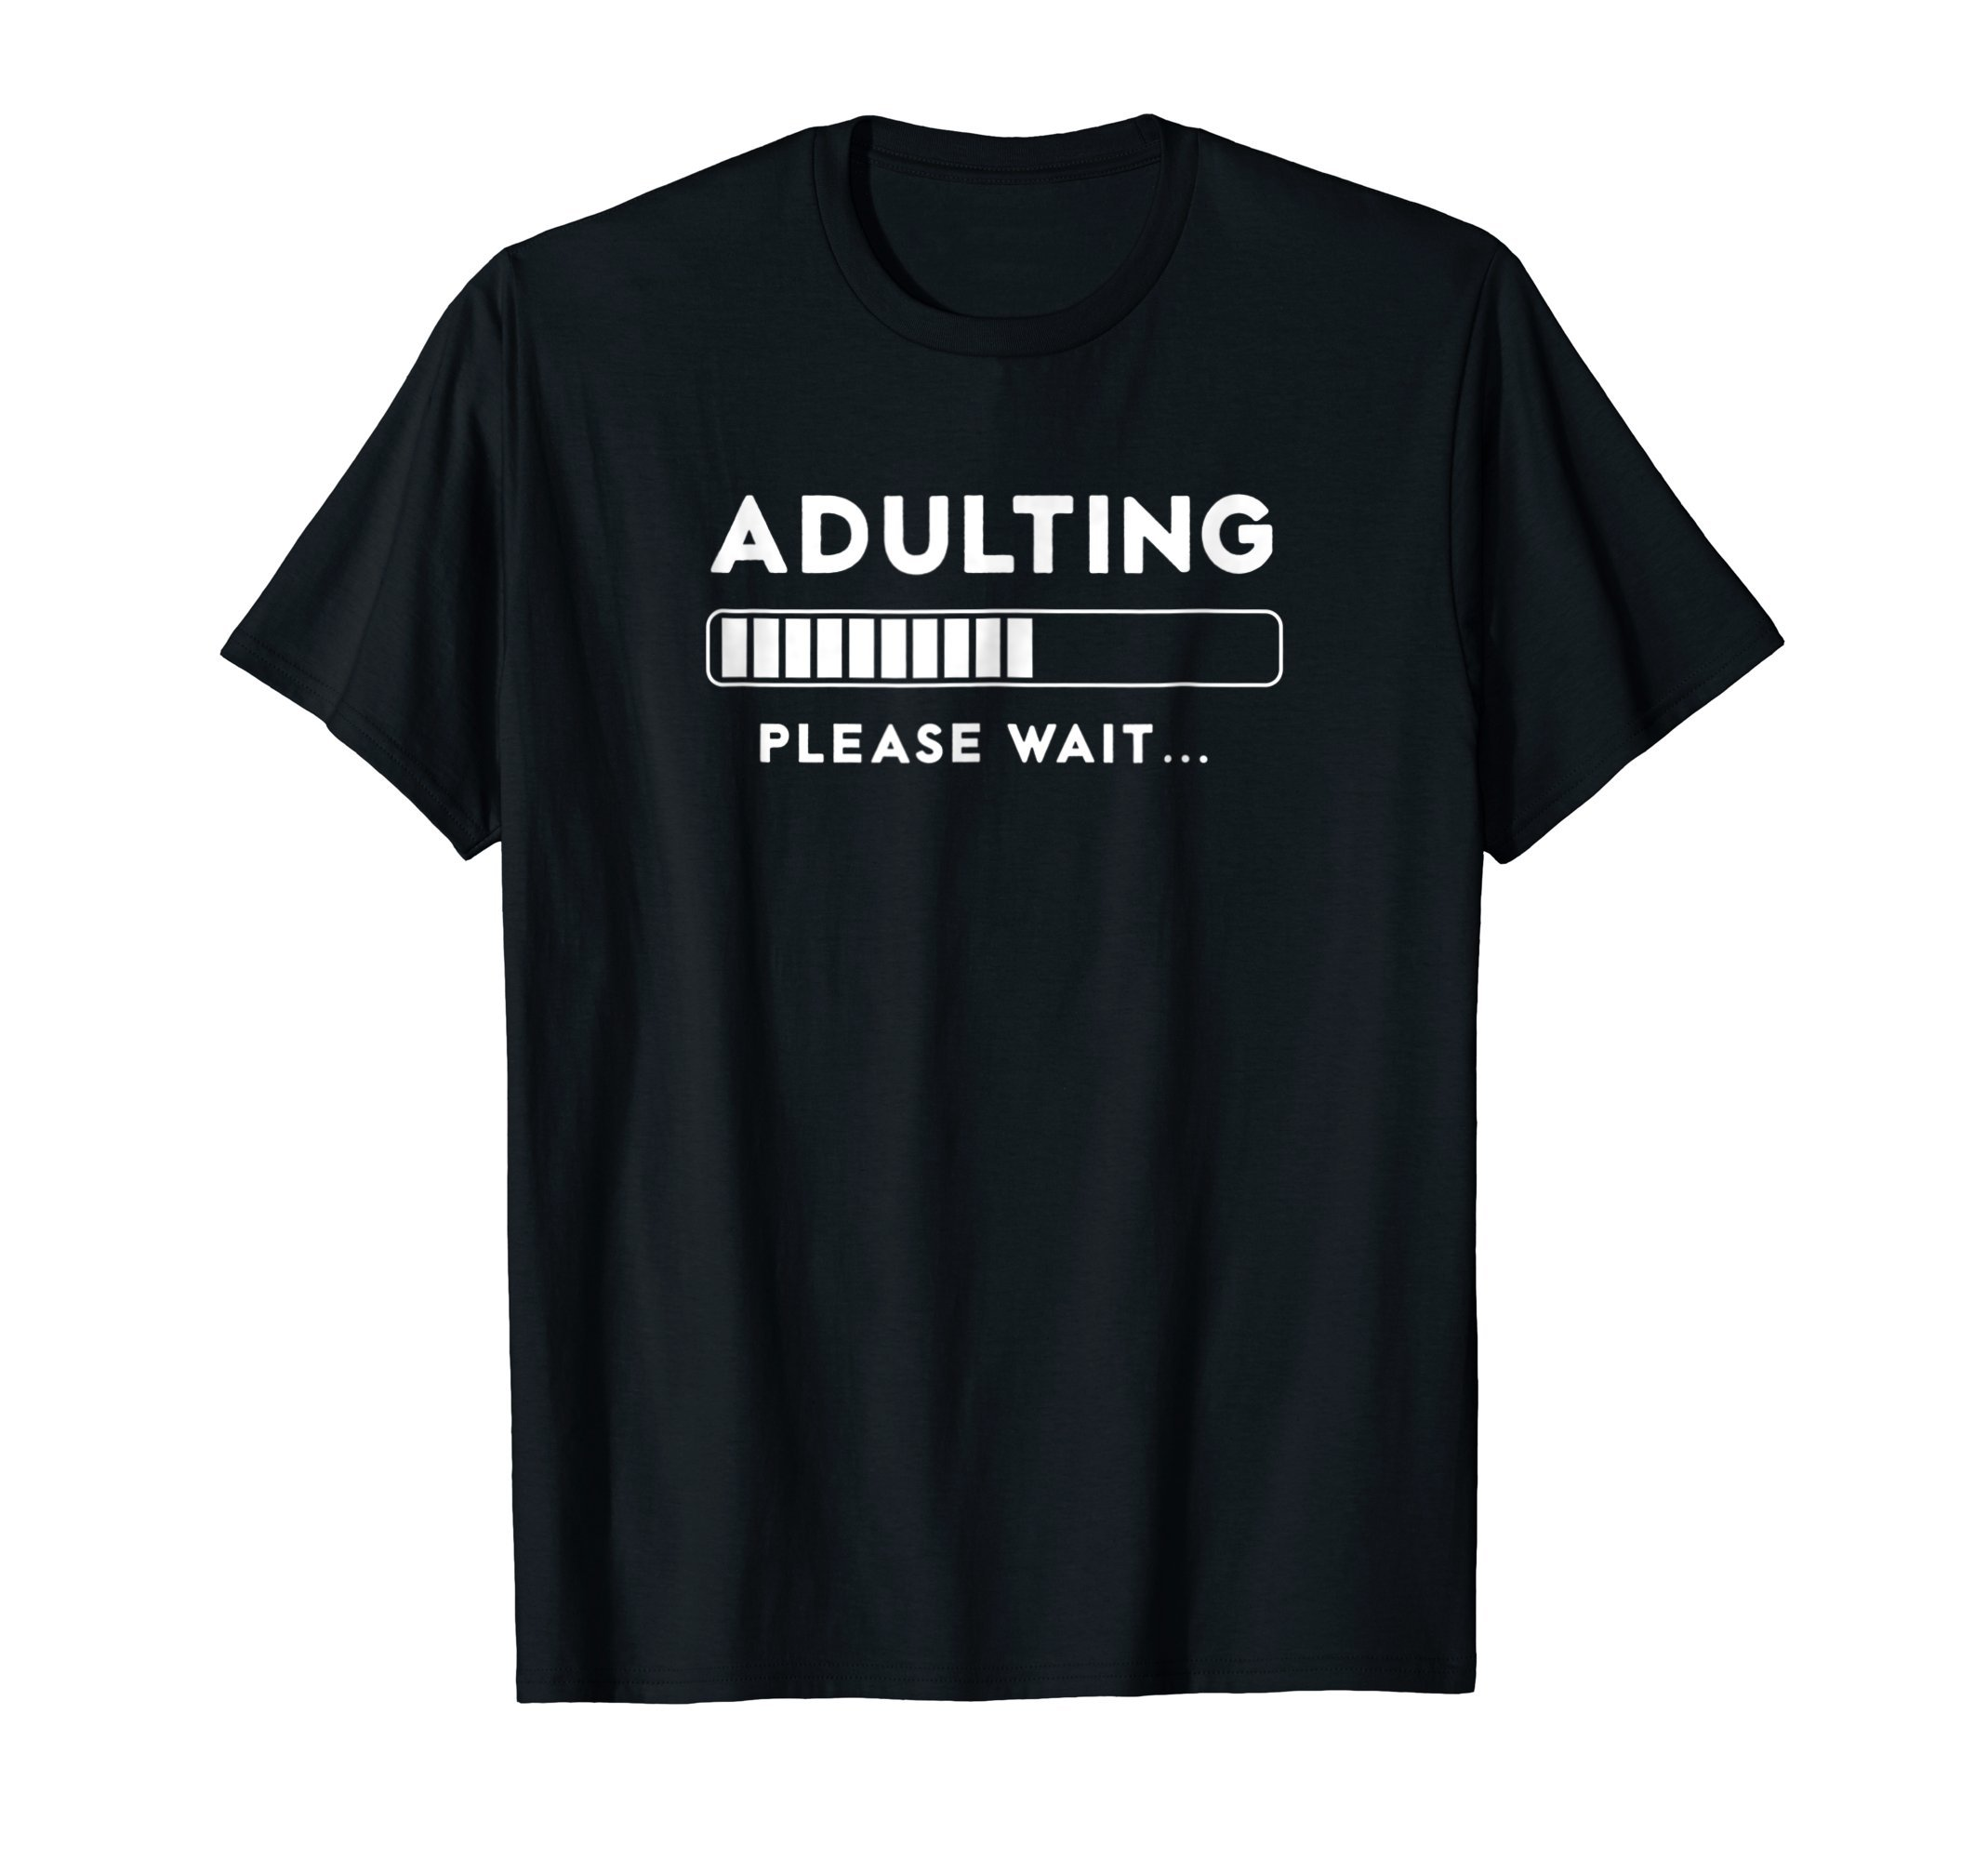 Adulting Shirt - Adulting Please Wait Loading